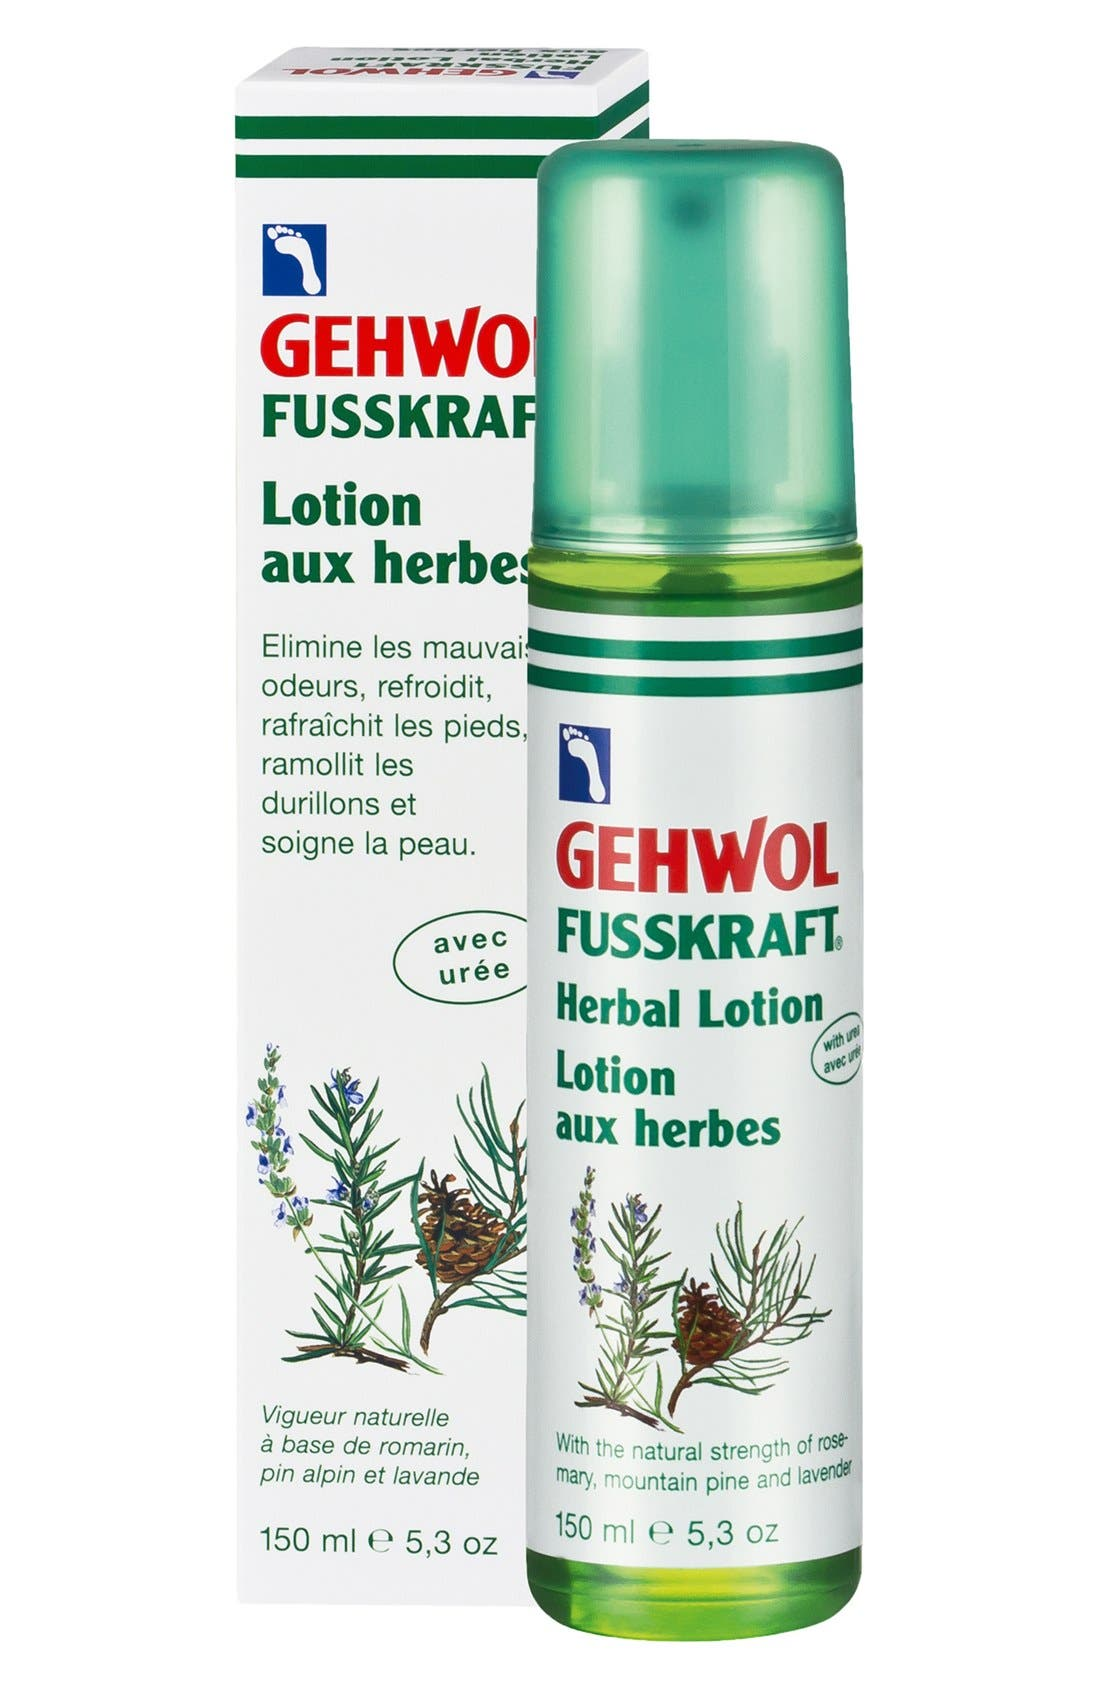 GEHWOL® FUSSKRAFT® Herbal Lotion